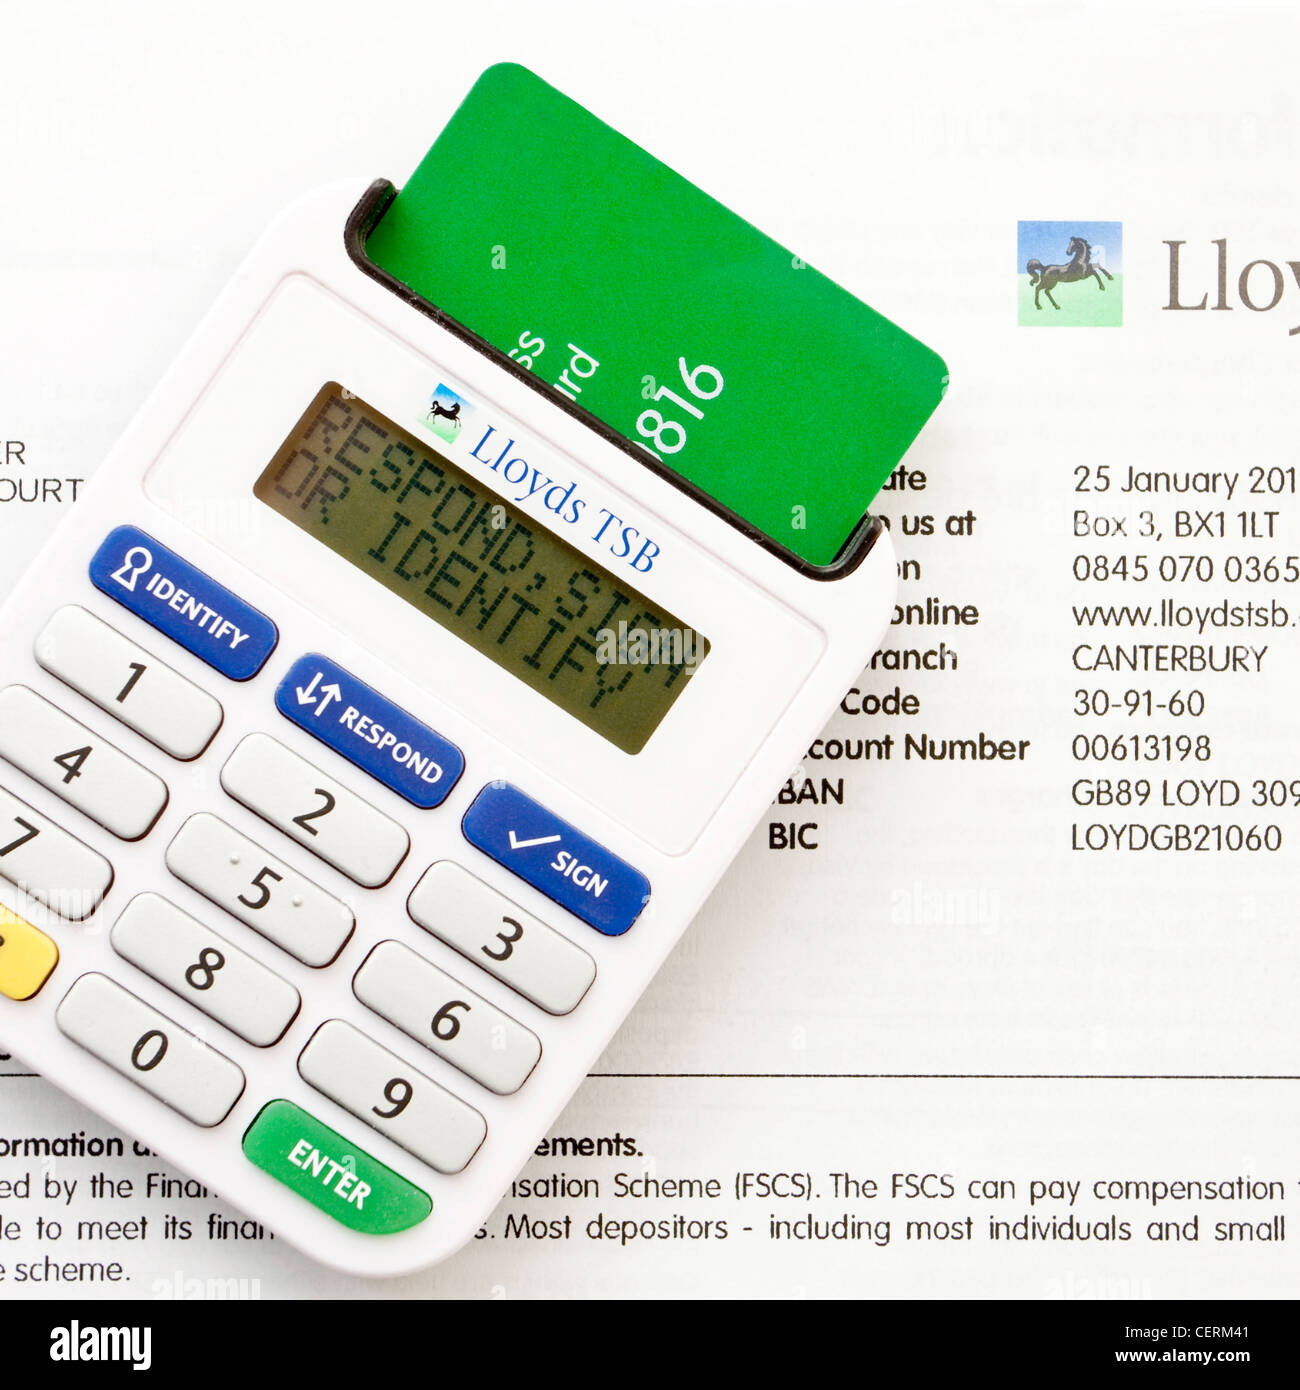 Lloyds bank card stock photos lloyds bank card stock images alamy lloyds bank security card reader business accounts stock image reheart